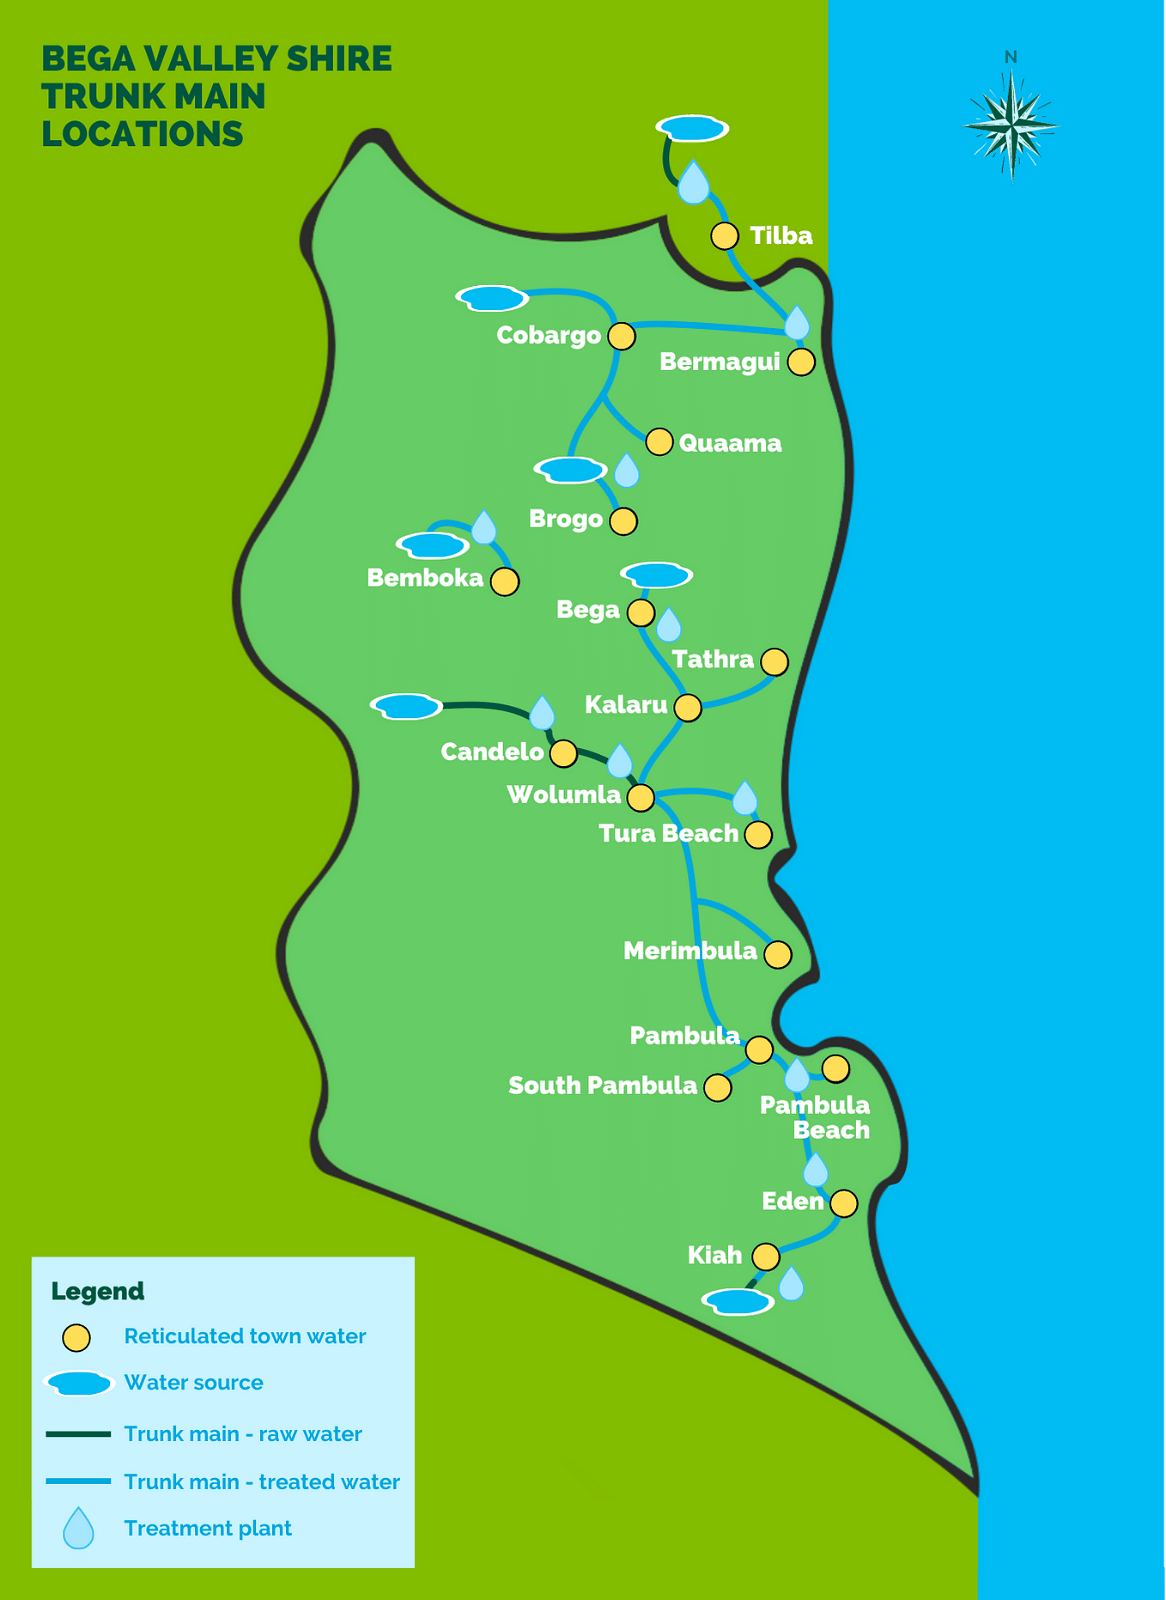 A map of the Bega Valley Shire's water trunk mains.